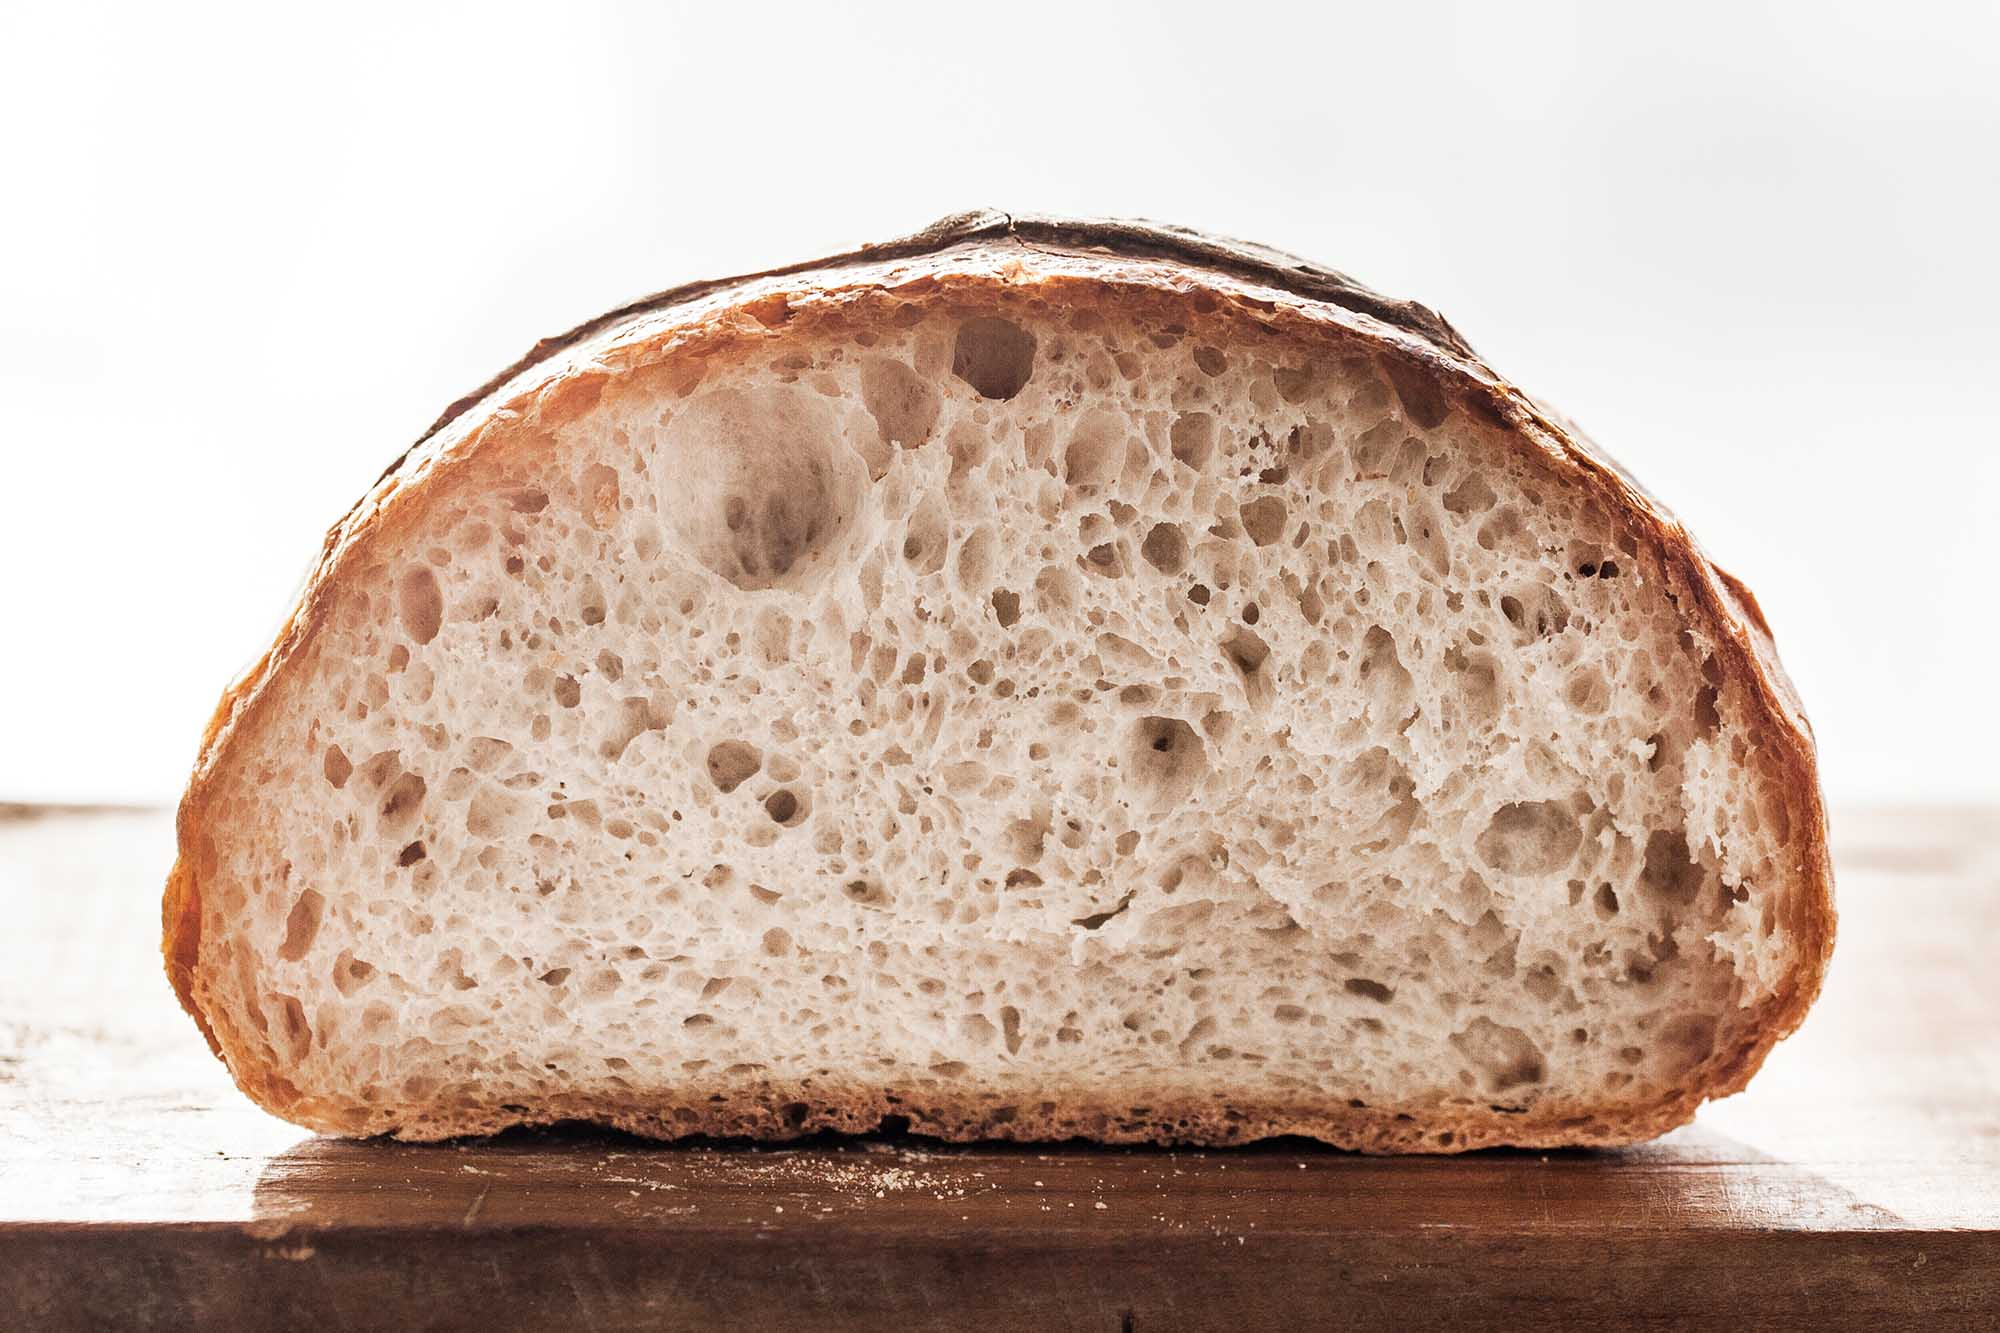 Easy kno knead bread is on a wooden cutting board and the the inside of the crusty loaf is visible.